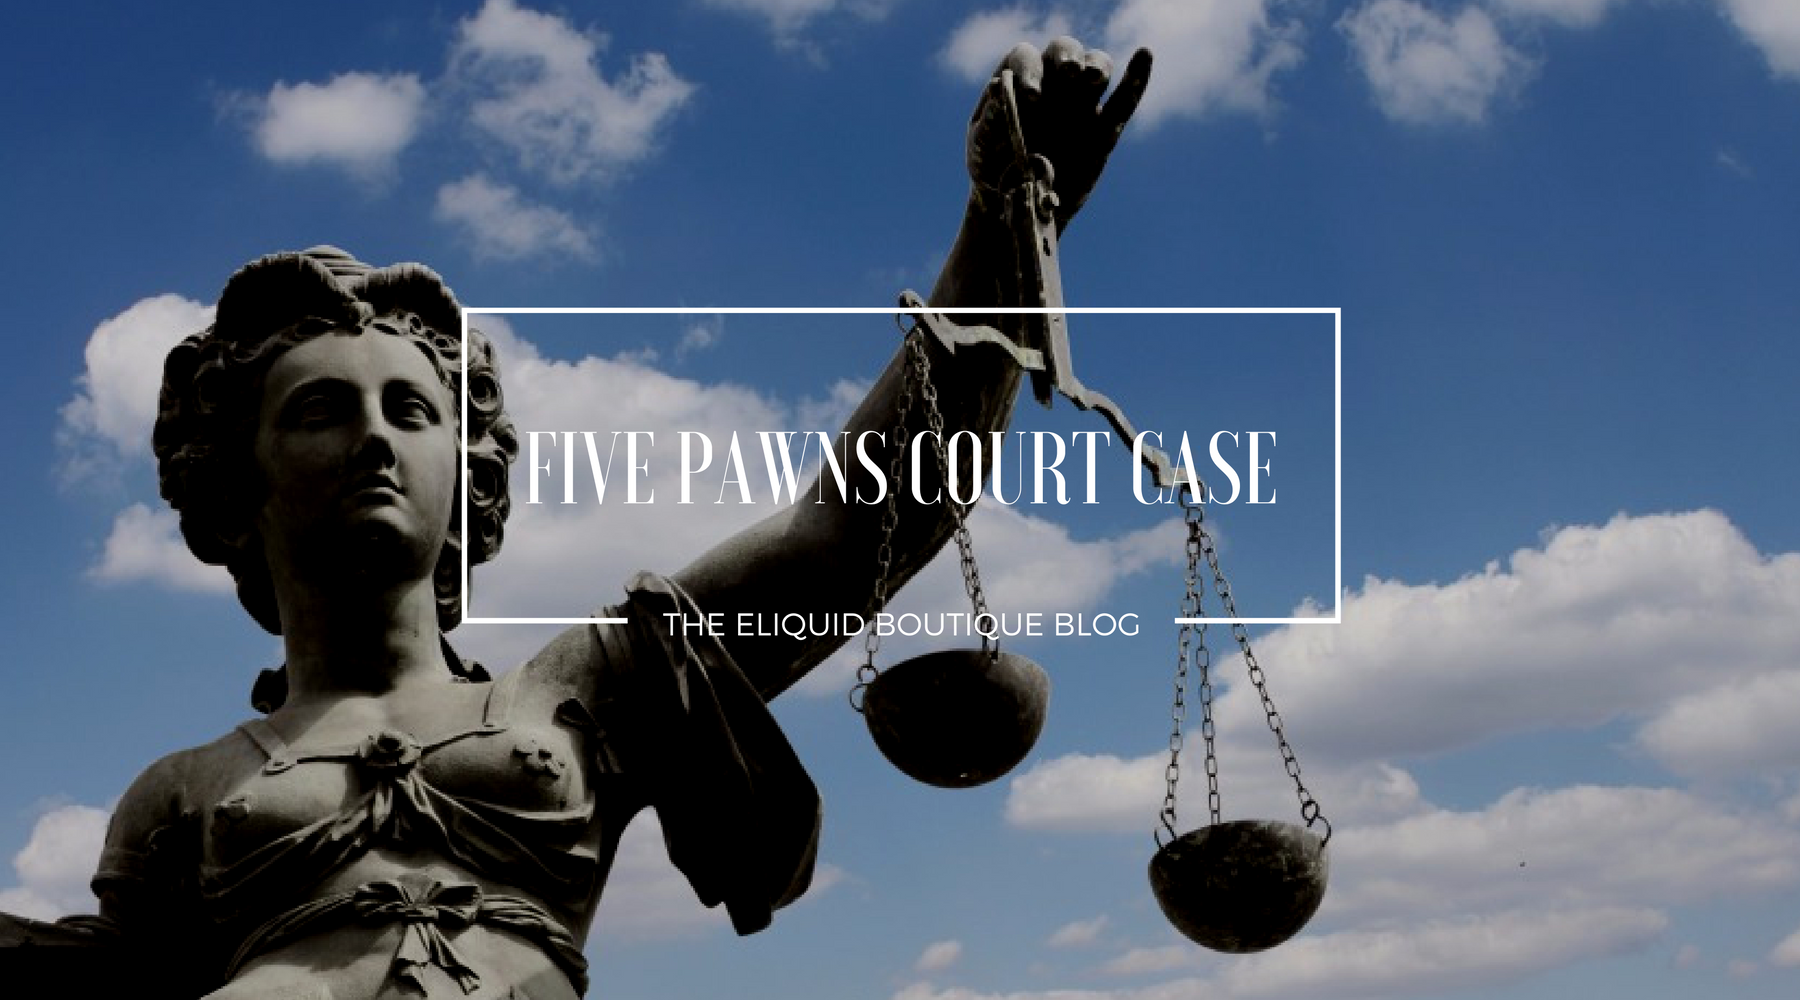 Five Pawns Class-Action Lawsuit, Vaping Ingredients, and What It Means